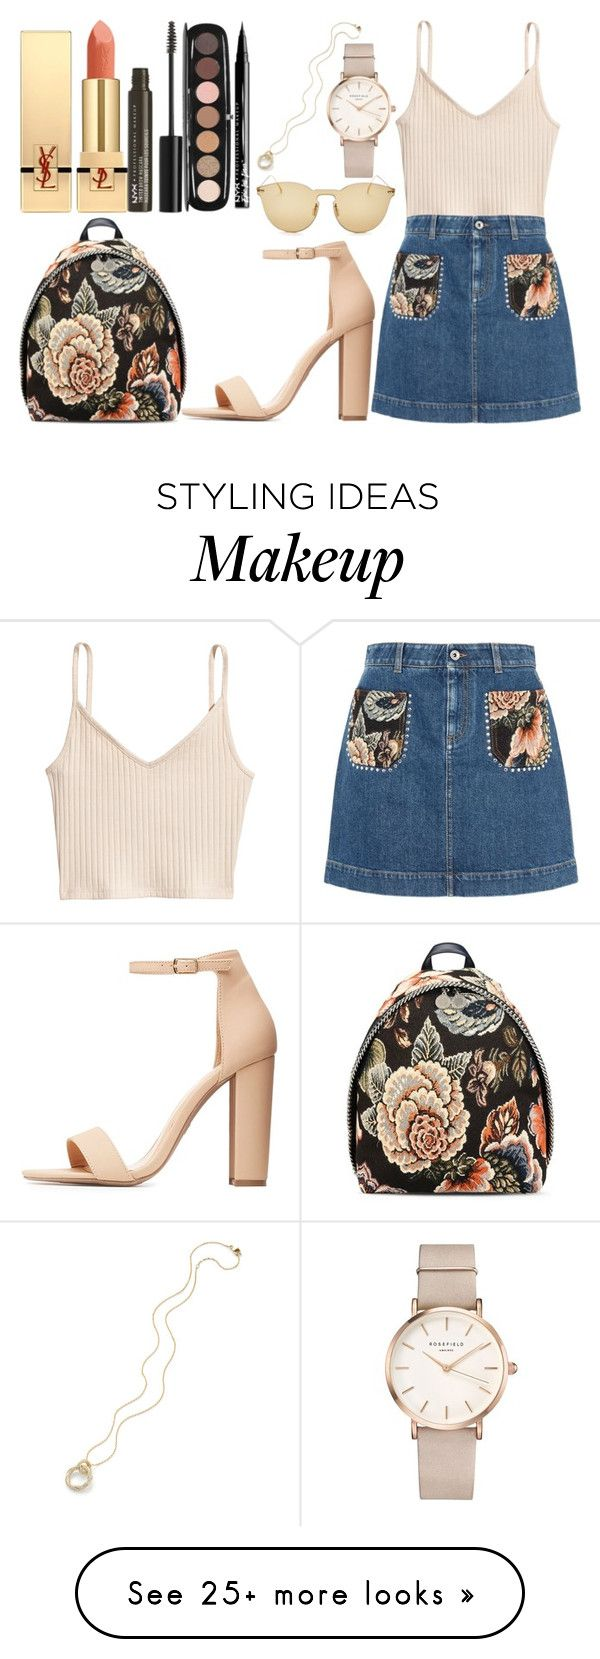 """loose cannon"" by citrusapple-1 on Polyvore featuring STELLA McCARTNEY, H&M, Yves Saint Laurent, Illesteva, NYX, Charlotte Russe, Marc Jacobs and ROSEFIELD"